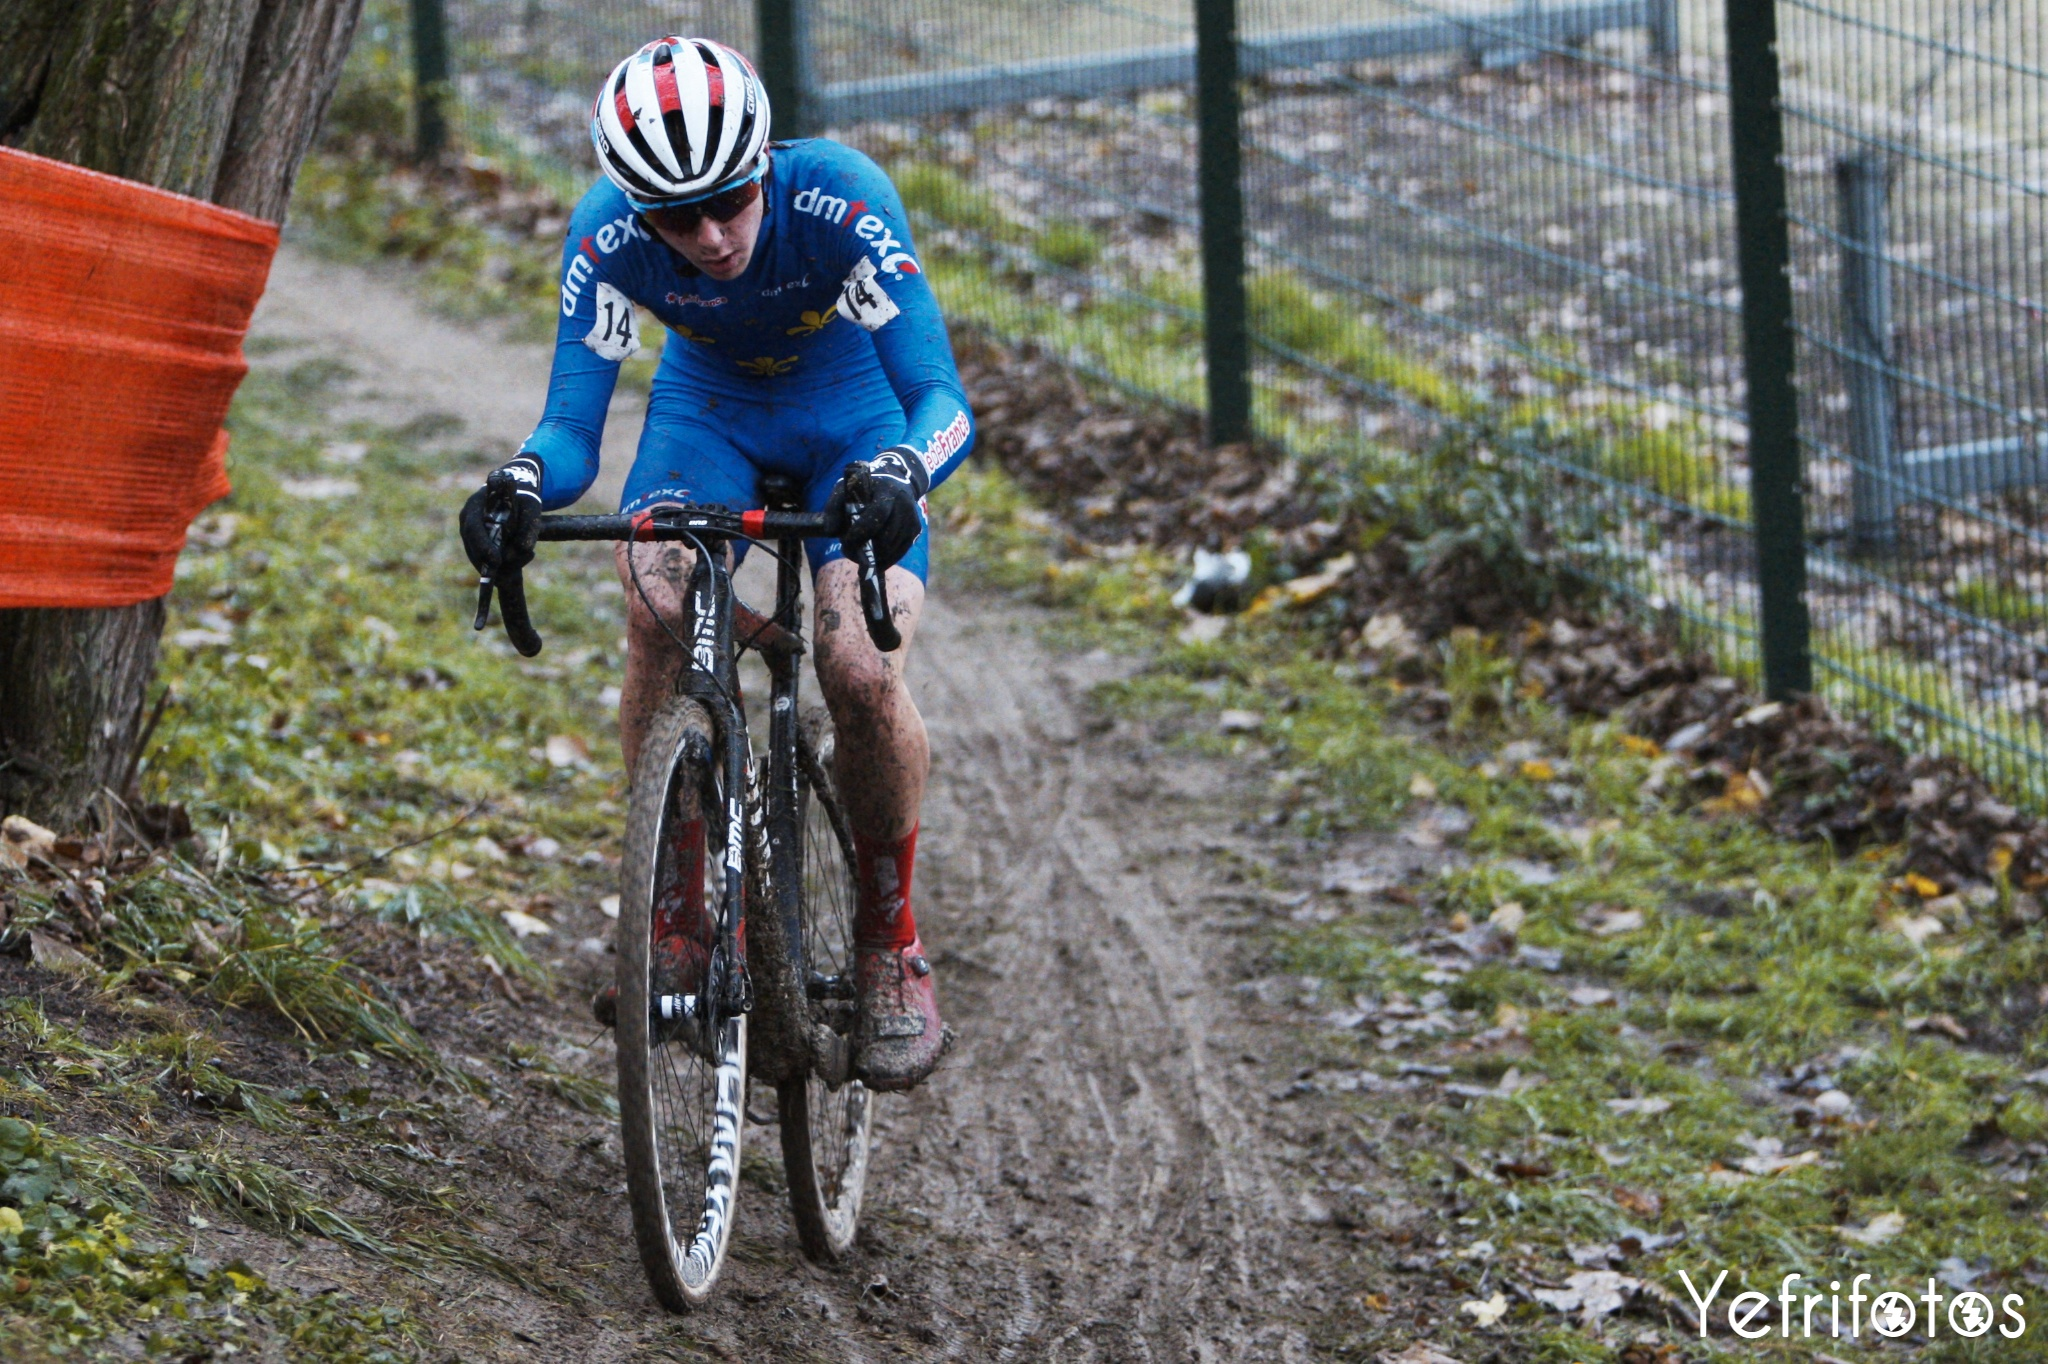 Ronan Auffret - US Metro Transports - Coupe de France Cyclocross Jablines